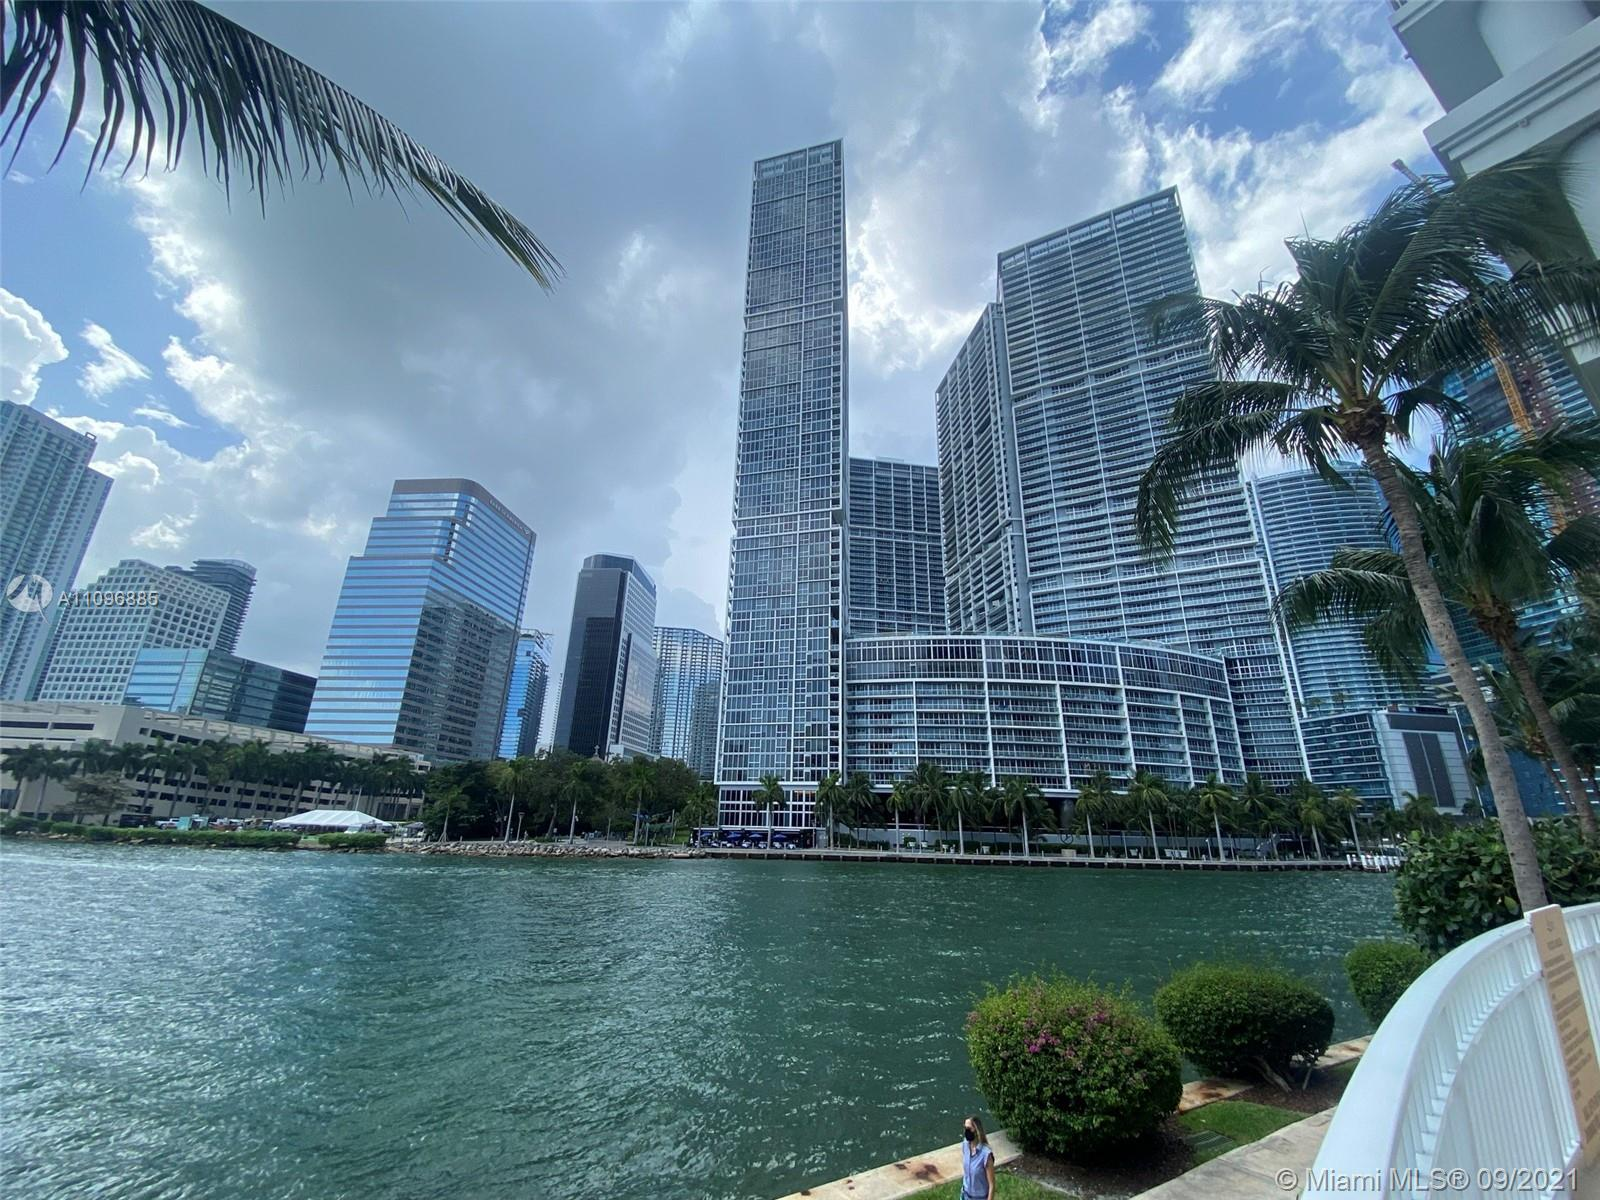 BREATHTAKING AND SPACIOUS 3 BED & 3 BATHS UNIT LOCATED COURTS AT BRICKELL KEY. AMENITIES INCLUDE THE